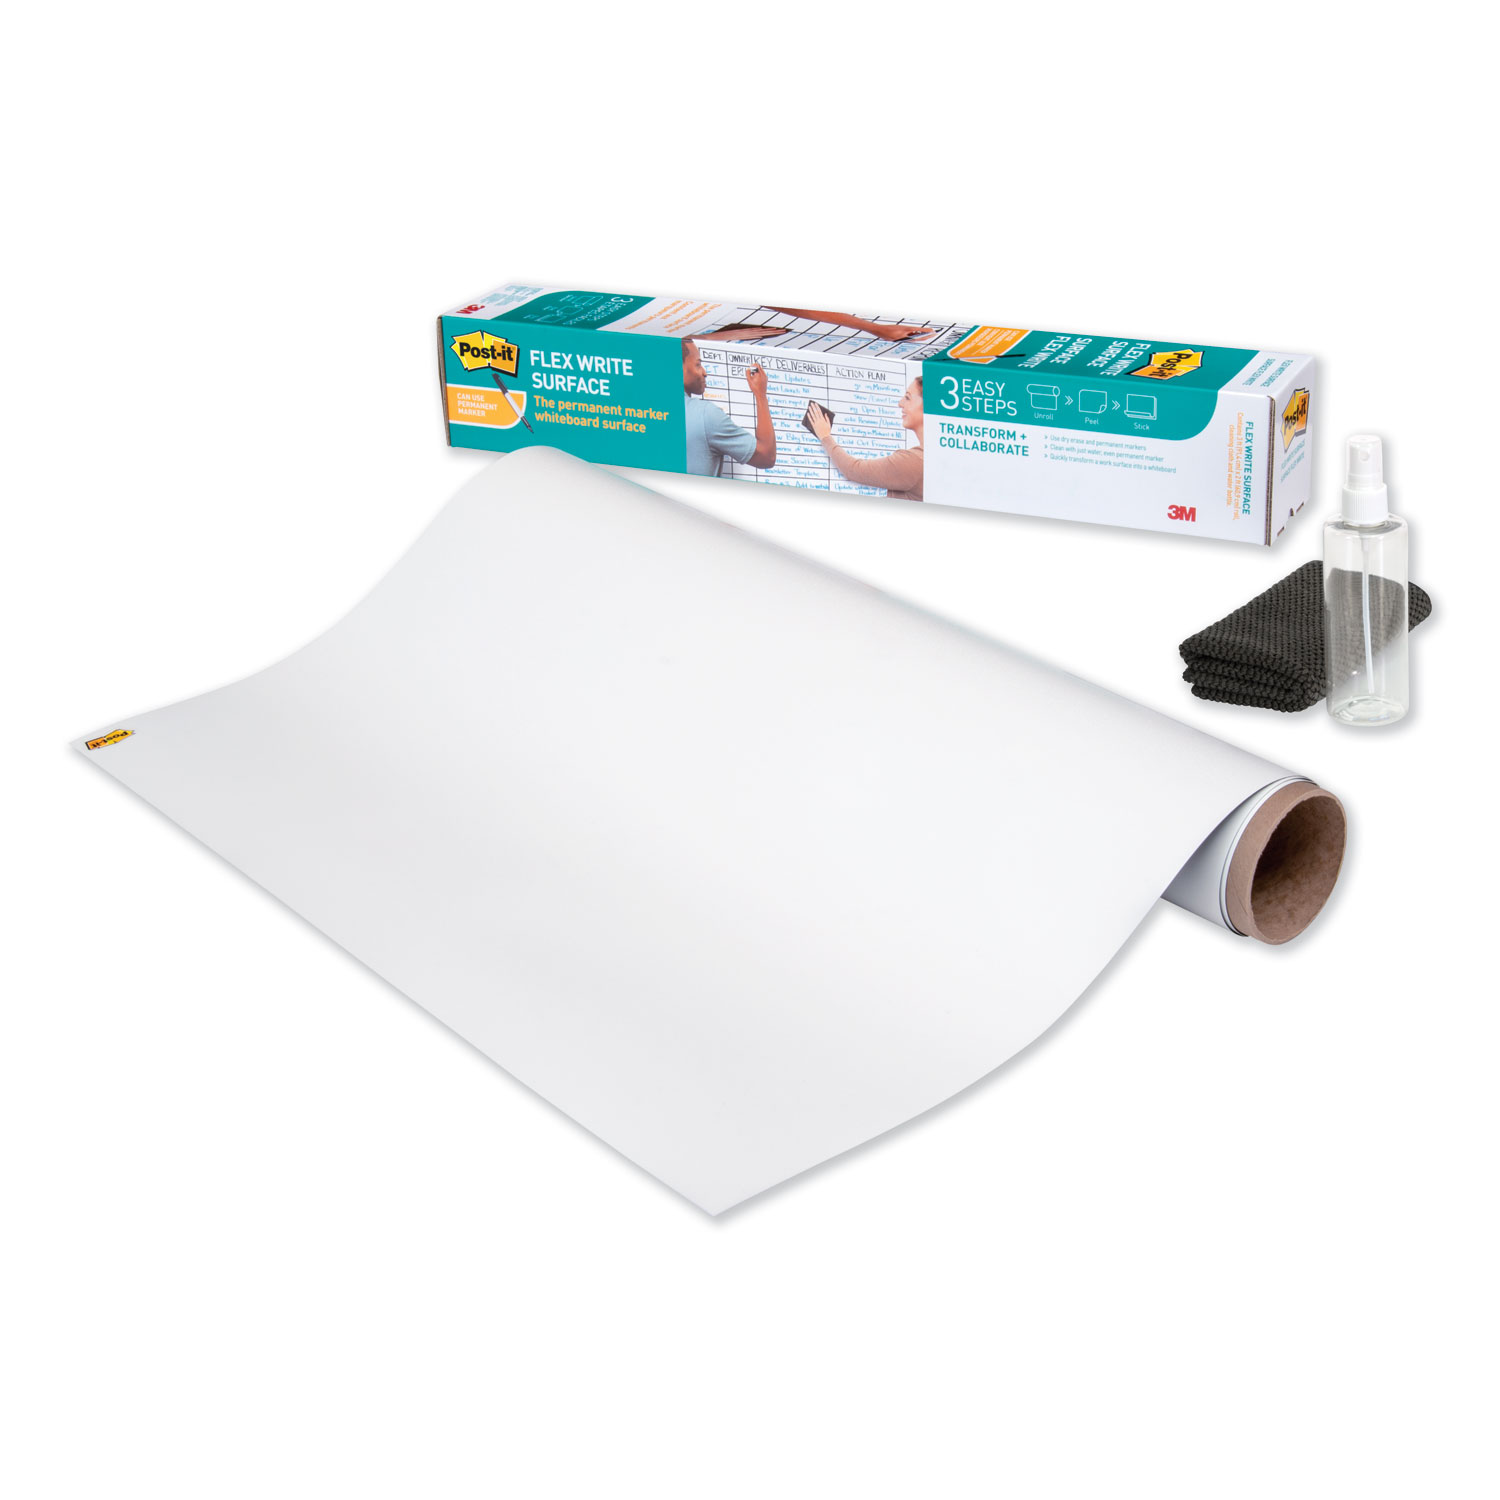 "Flex Write Surface, 36"" x 24"", White"